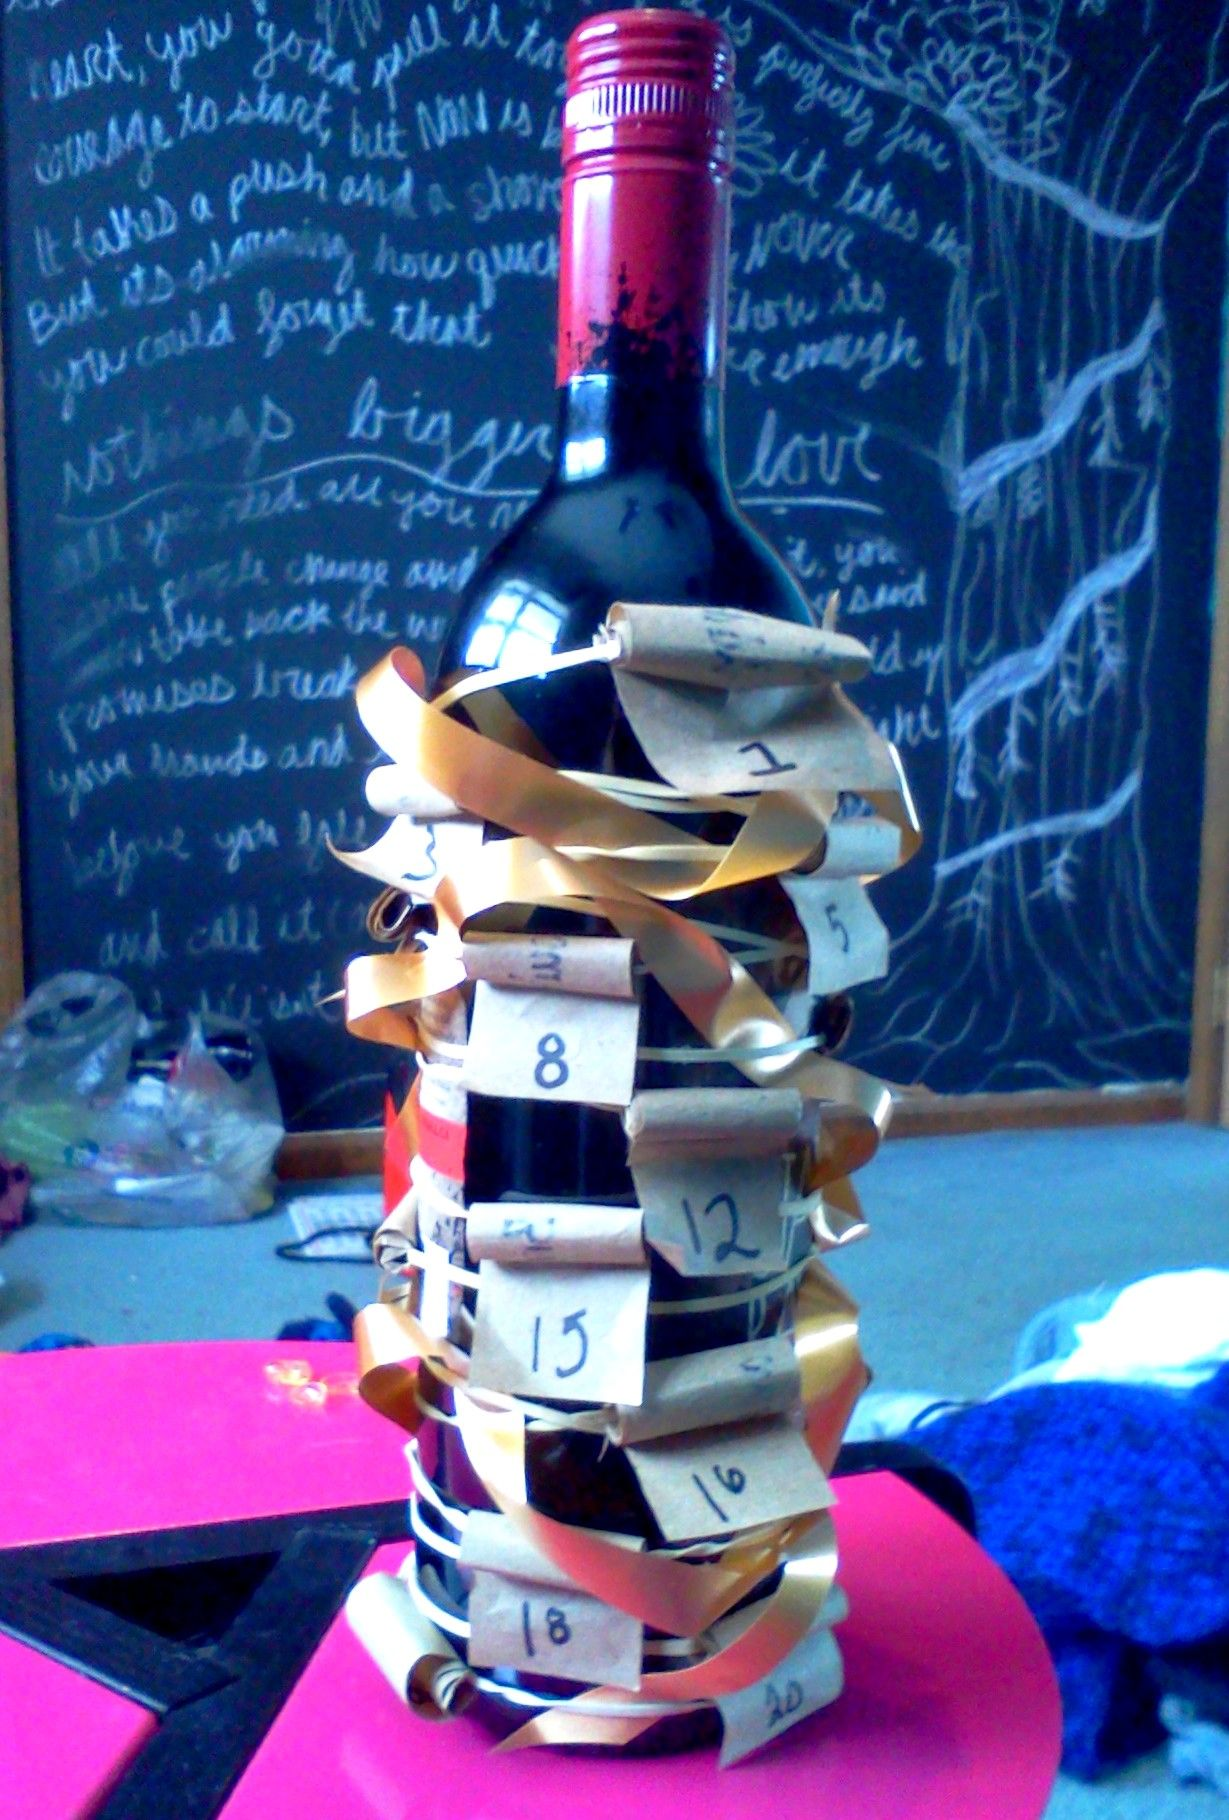 21st Birthday Gift I Made For My Boyfriend Bottle Of Red Wine Rubber Bands And Secret Messages Written On 21 Sheets Paper Him To Unroll